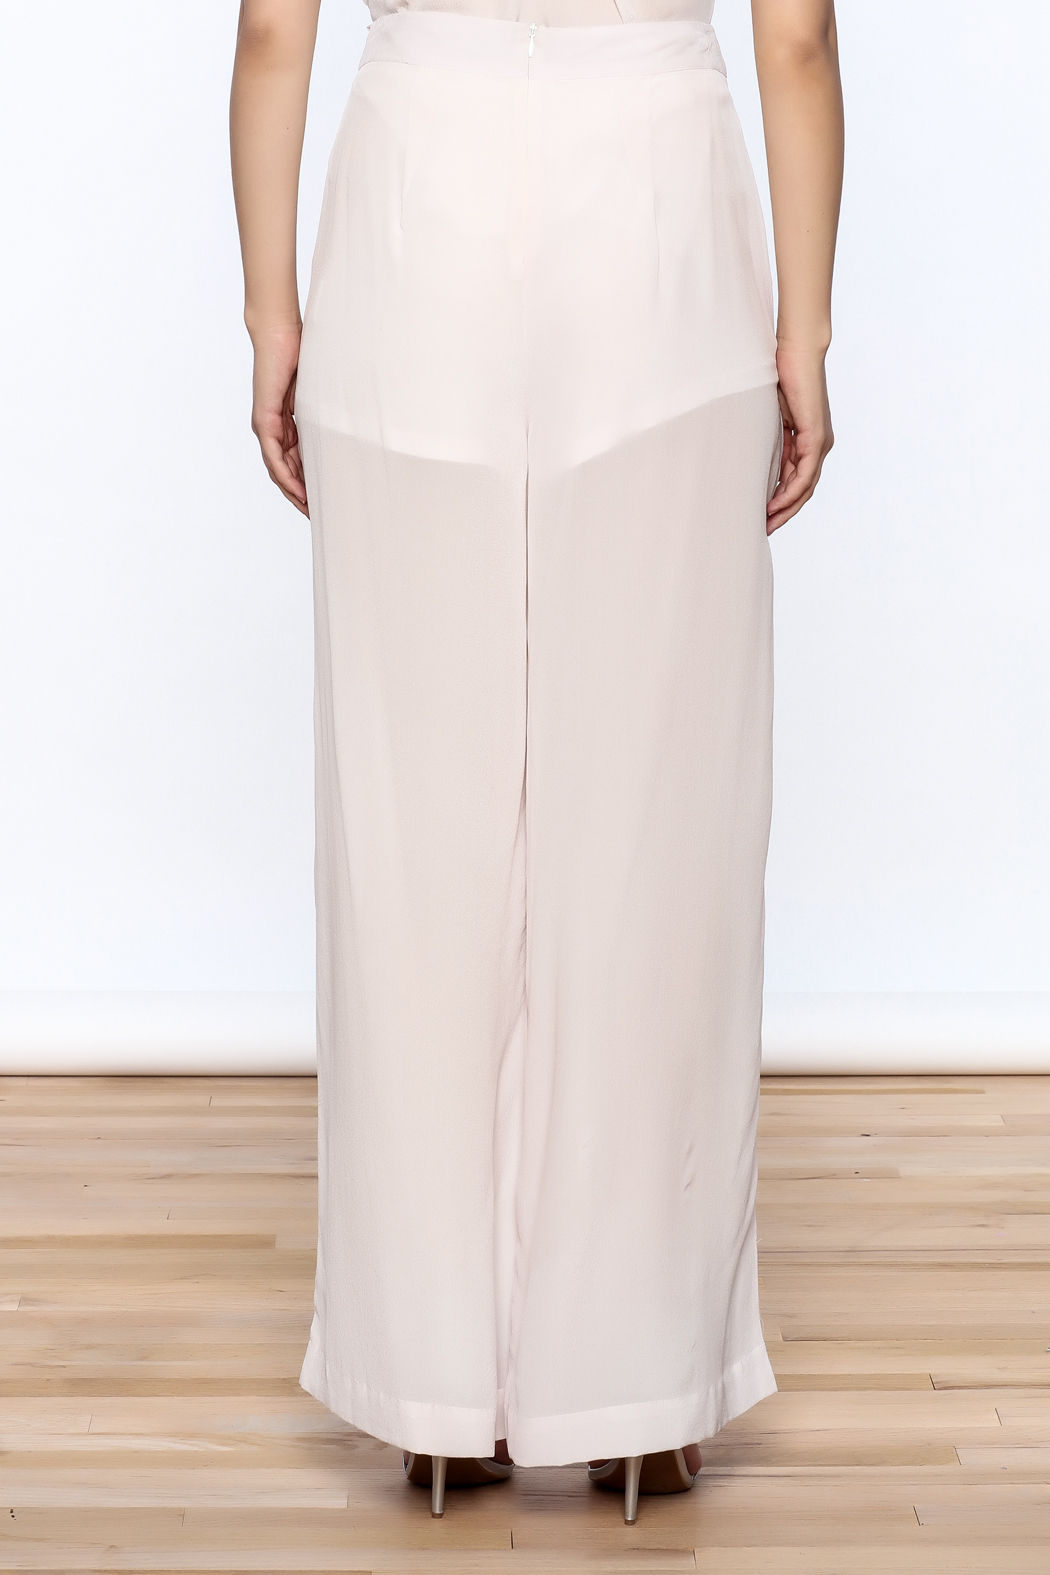 New Friends Colony Eloise Sheer Pants - Back Cropped Image